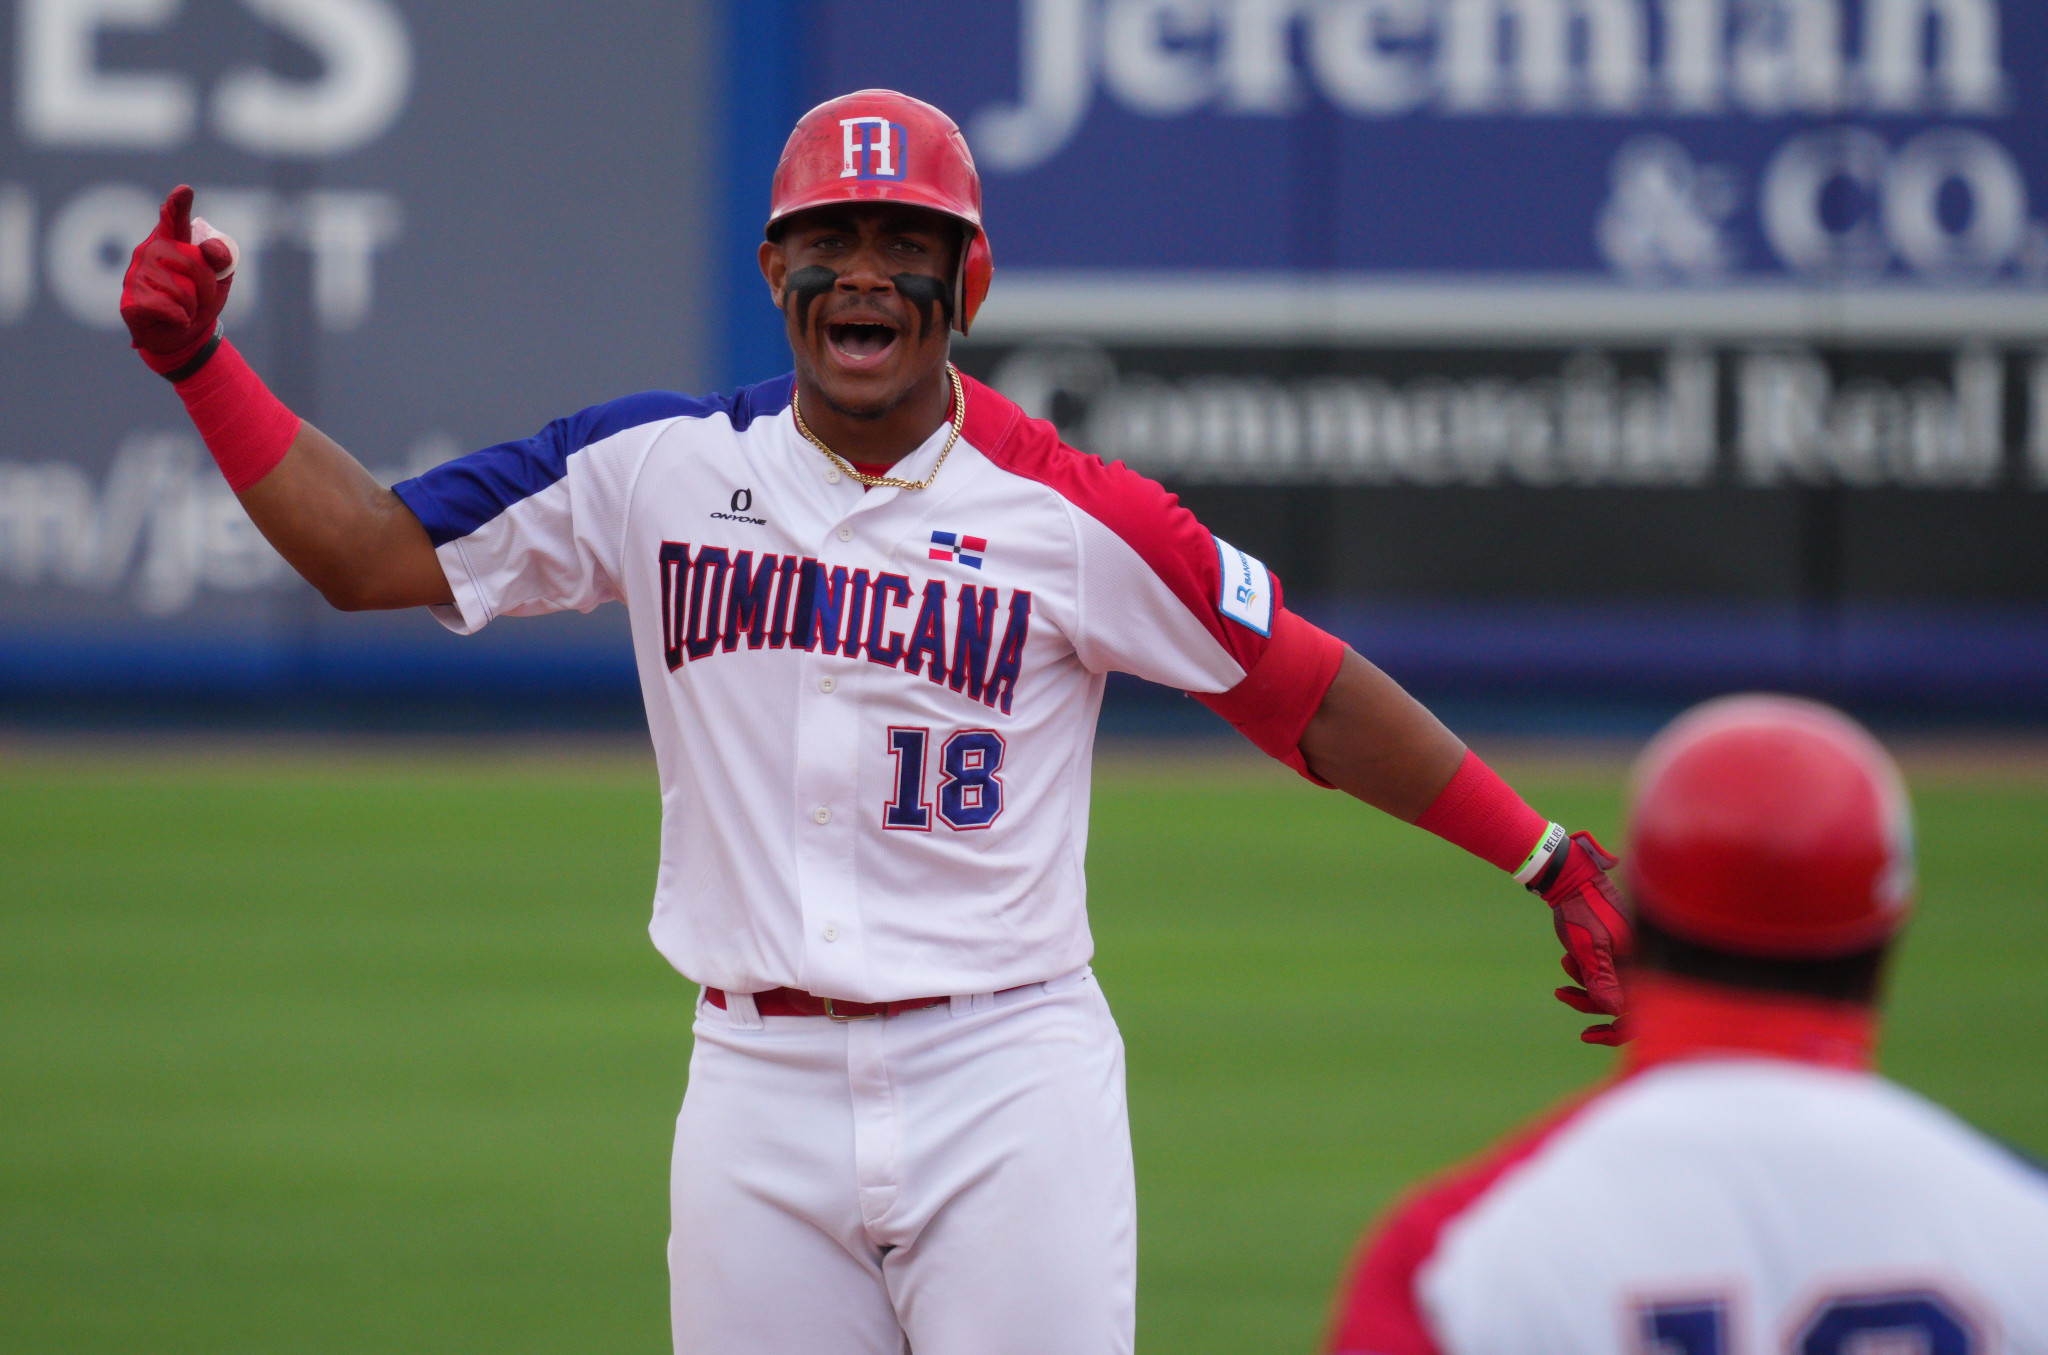 Dominican Republic hit important home runs to win Baseball Final Qualifier opener